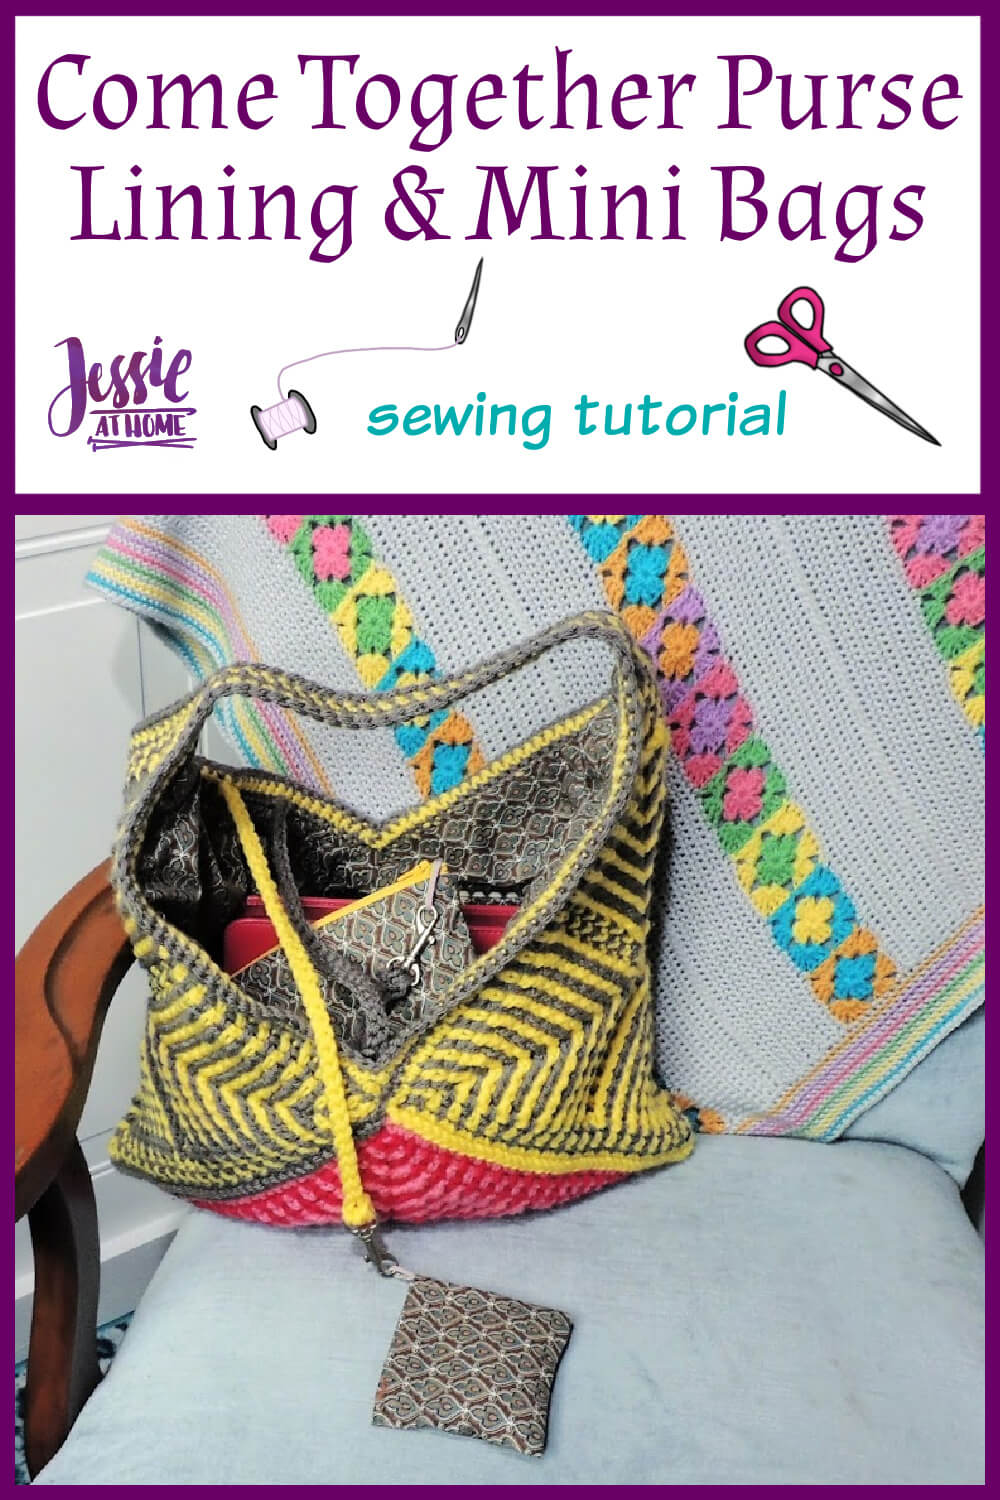 Come Together Purse Lining Sewing Tutorial - with 2 mini bags!